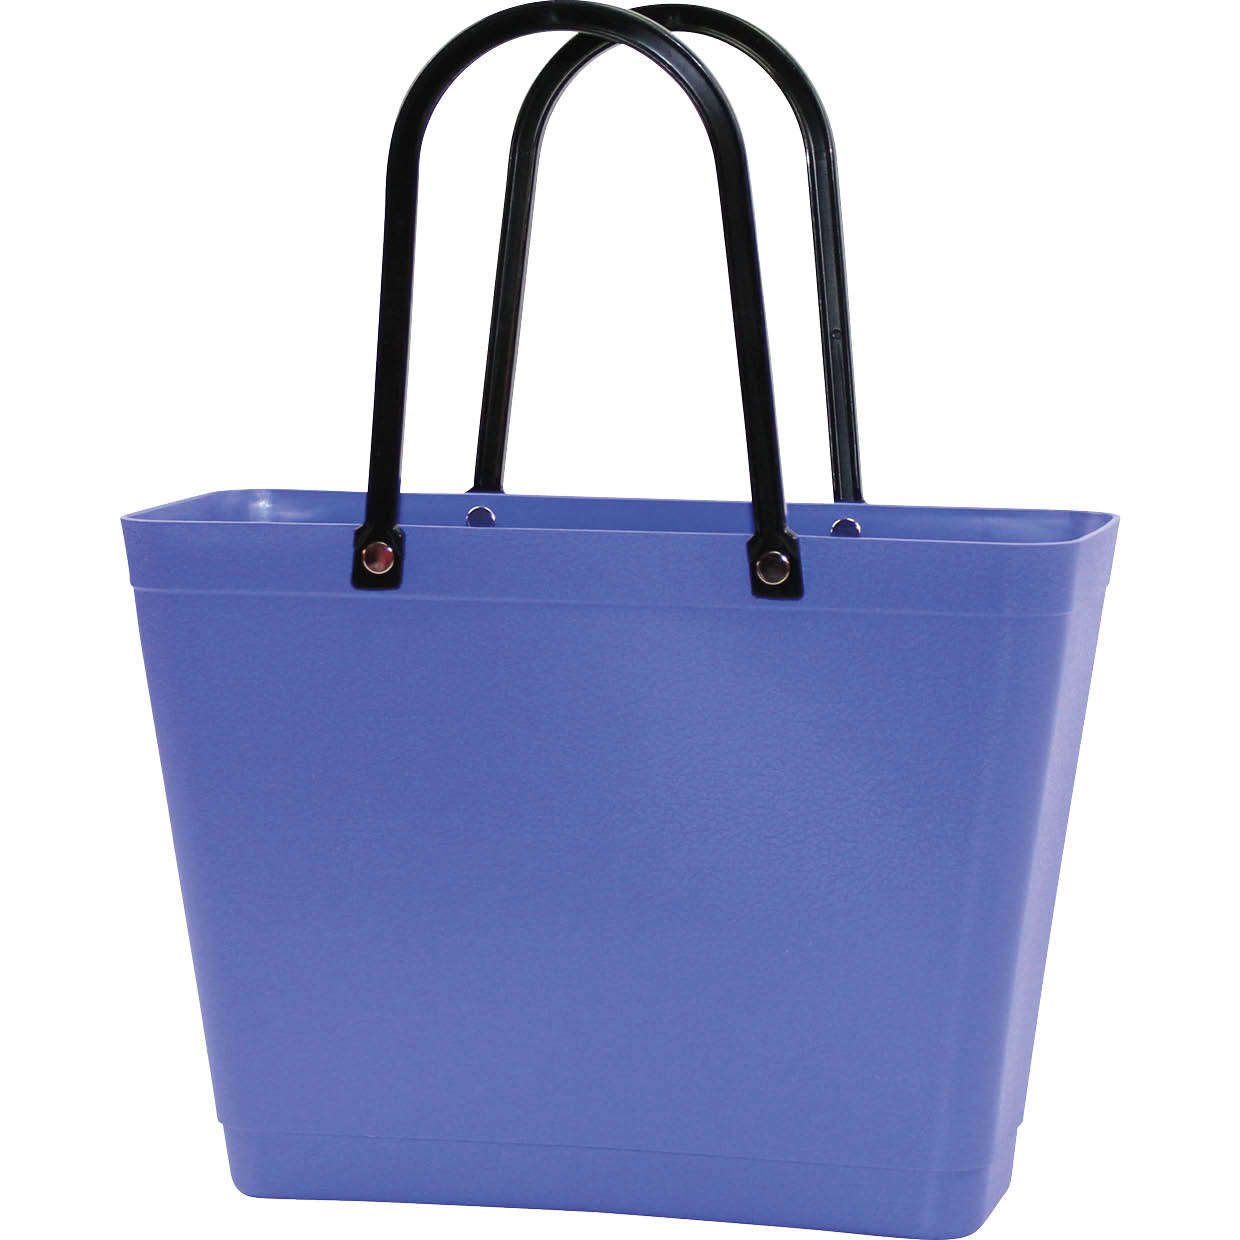 55213 Sweden Bag - Lila